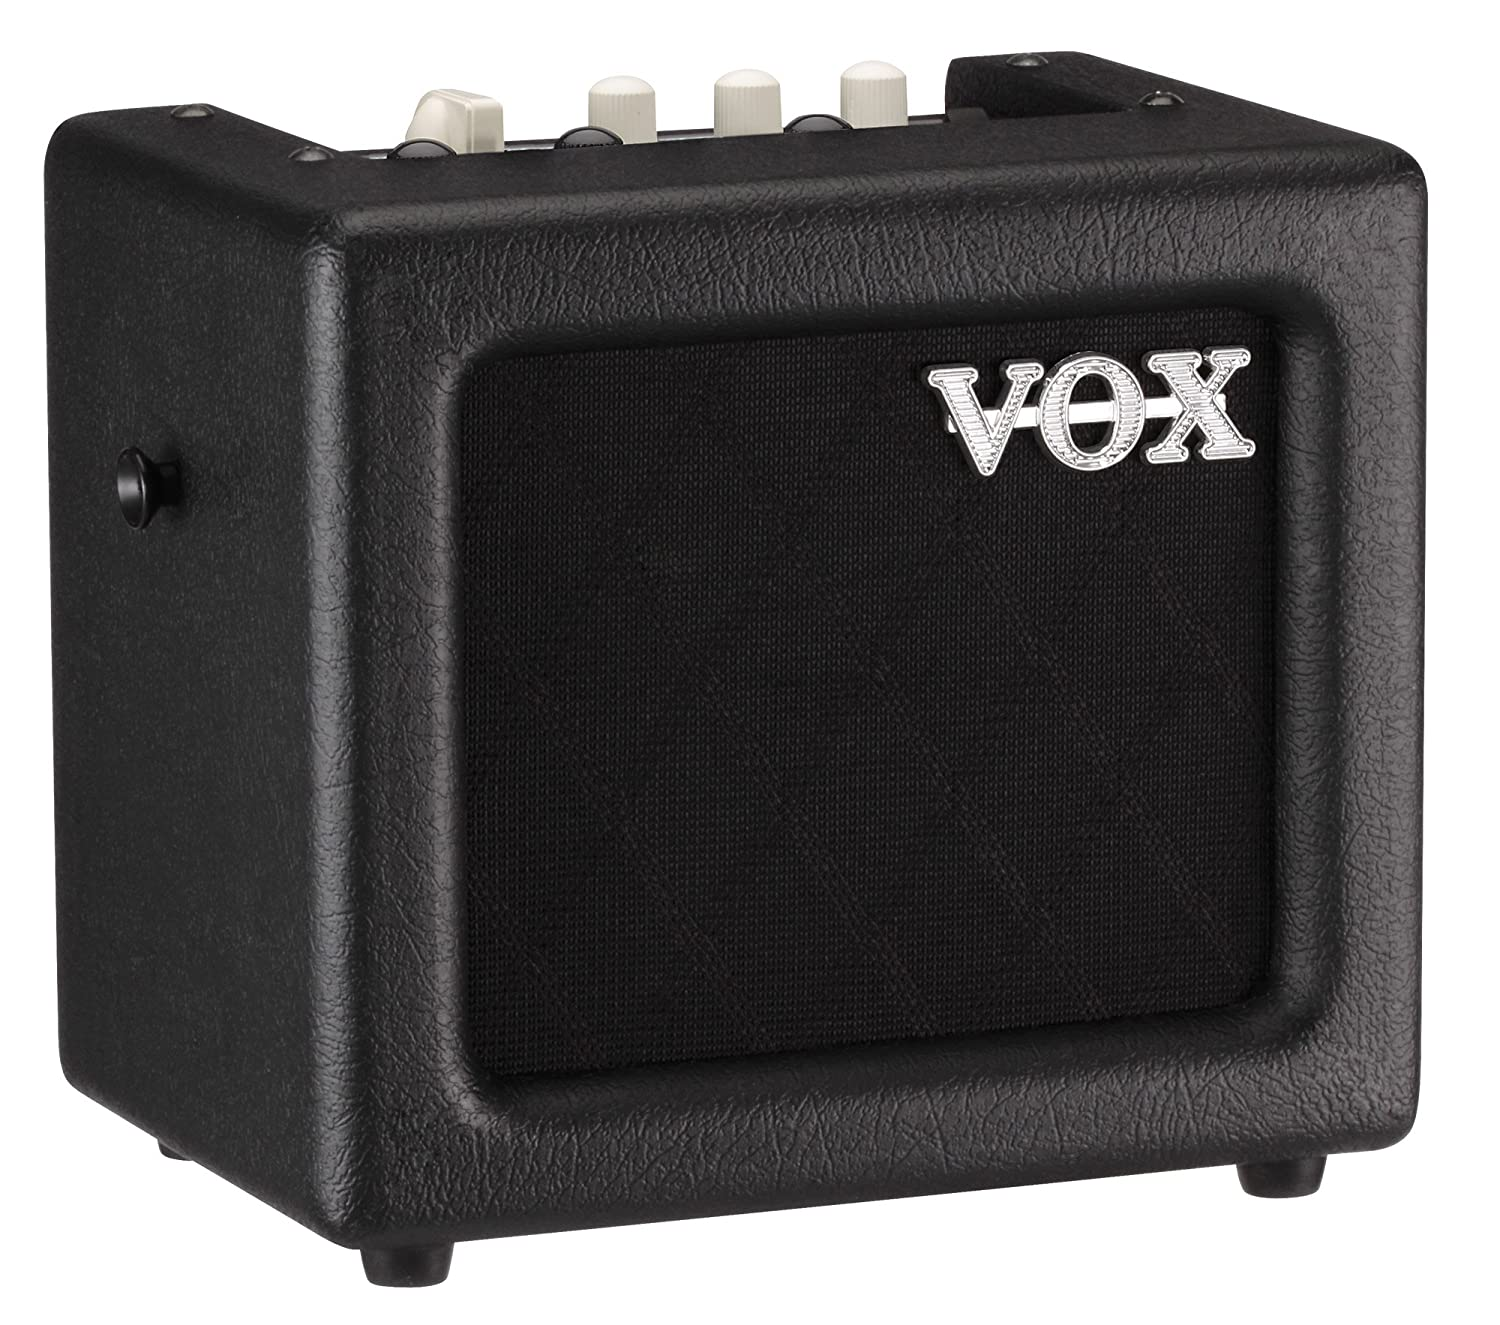 VOX Mini 3 G2 - Amplificador de guitarra, color negro: Amazon.es: Instrumentos musicales